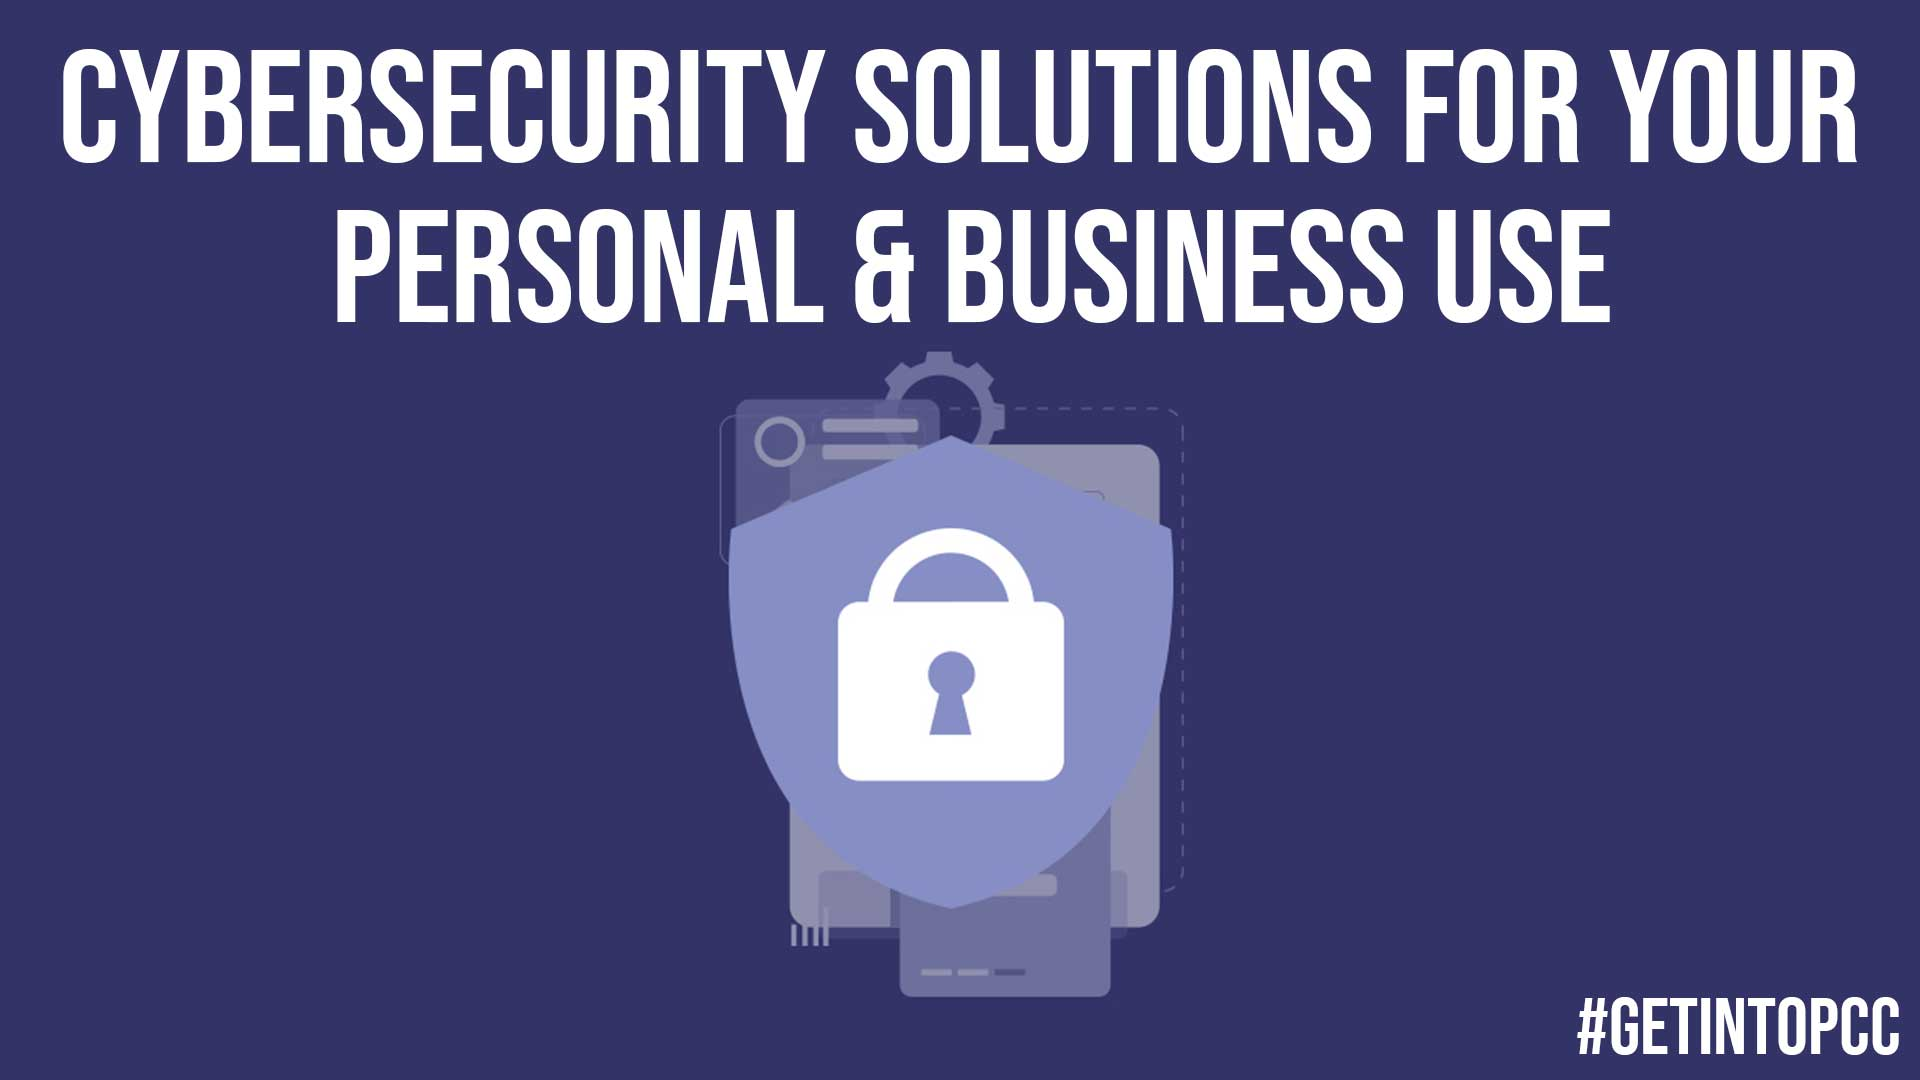 Cybersecurity Solutions for Your Personal Business Use